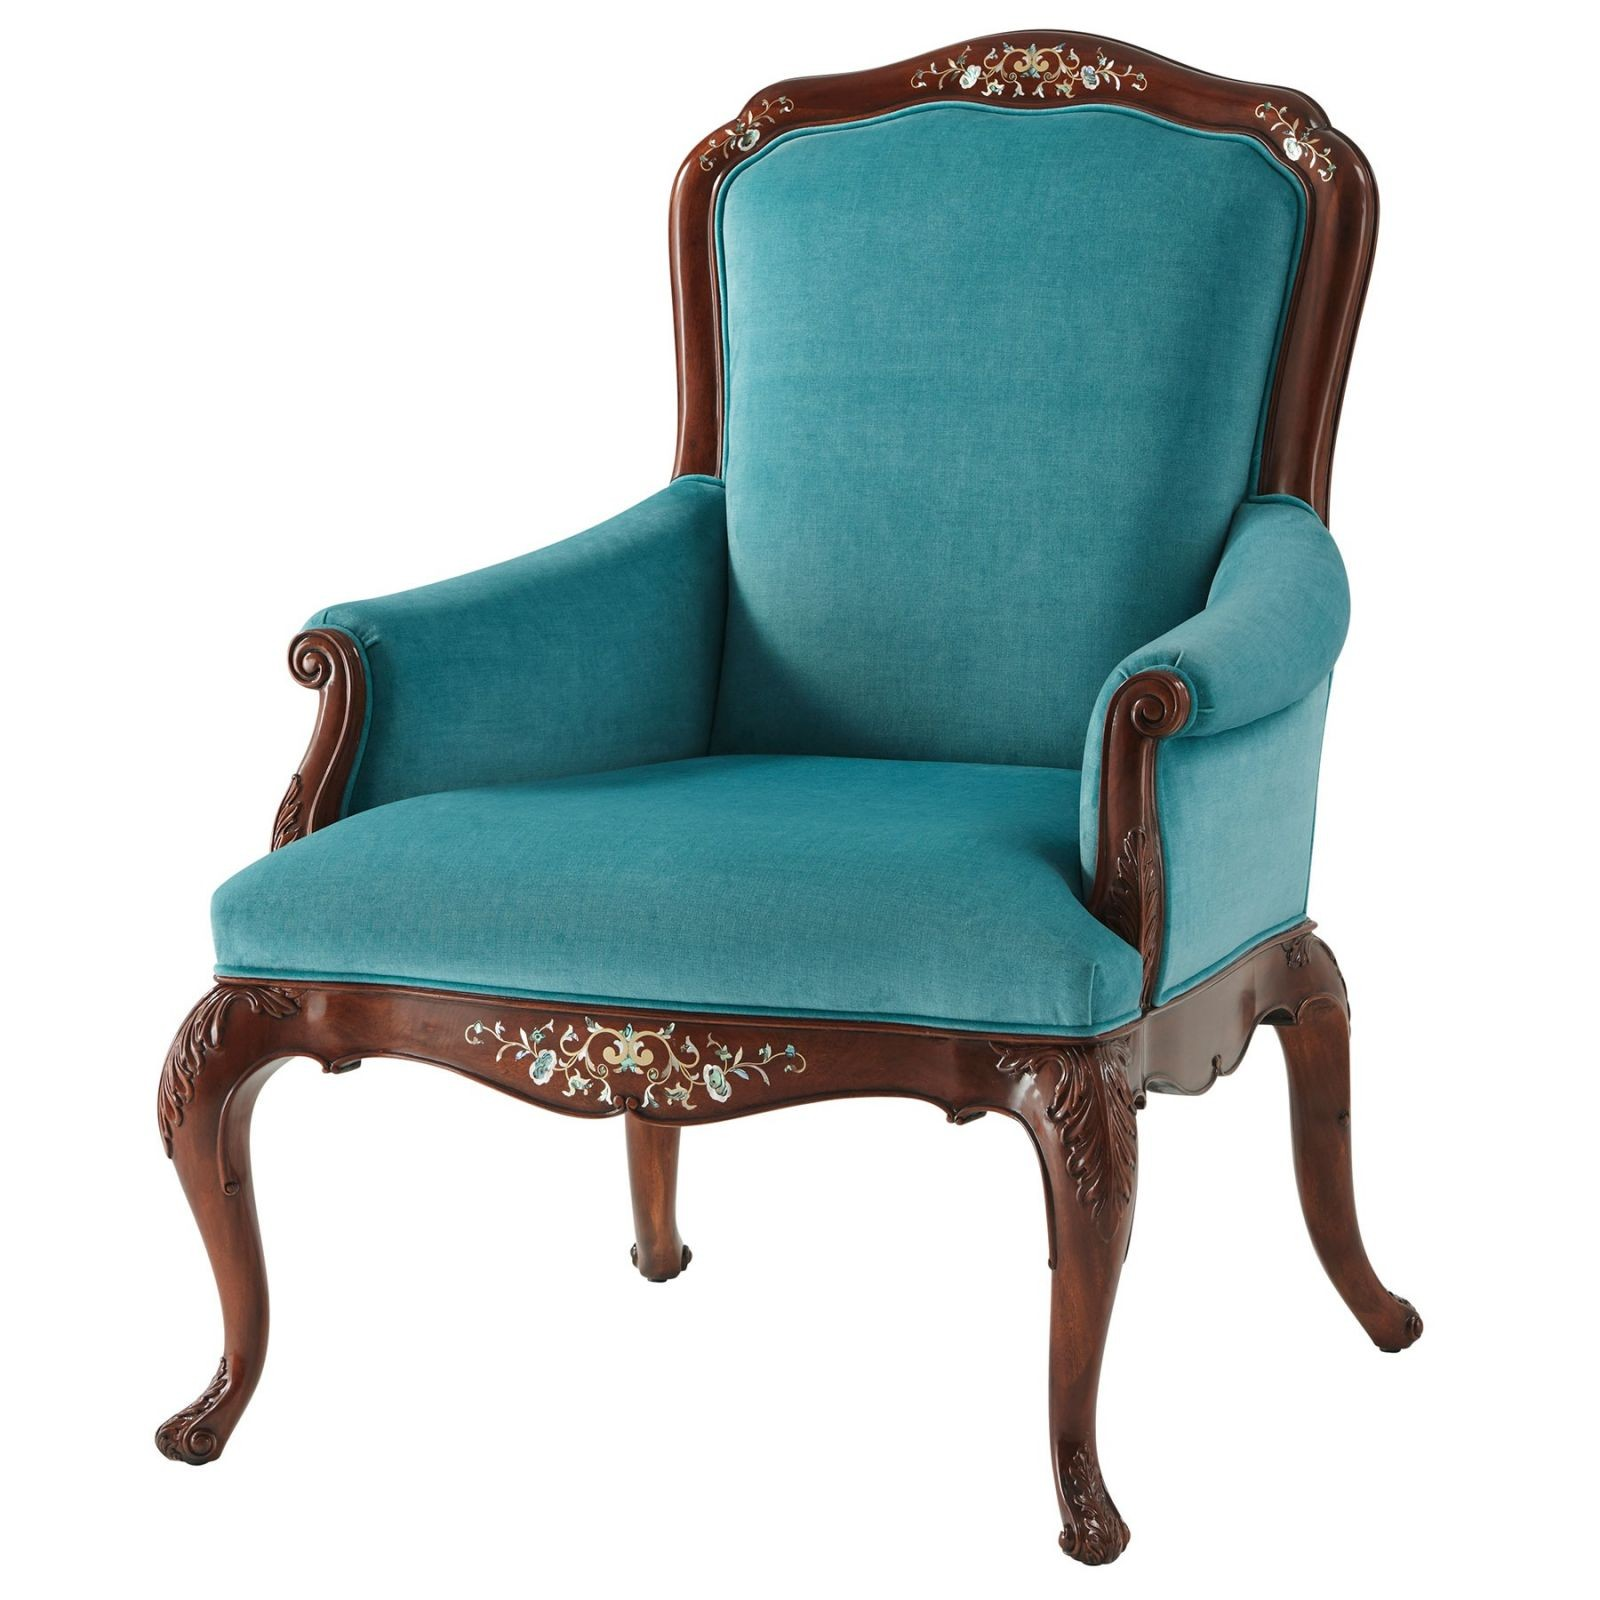 Mother of Pearl Inliad Arm Chair